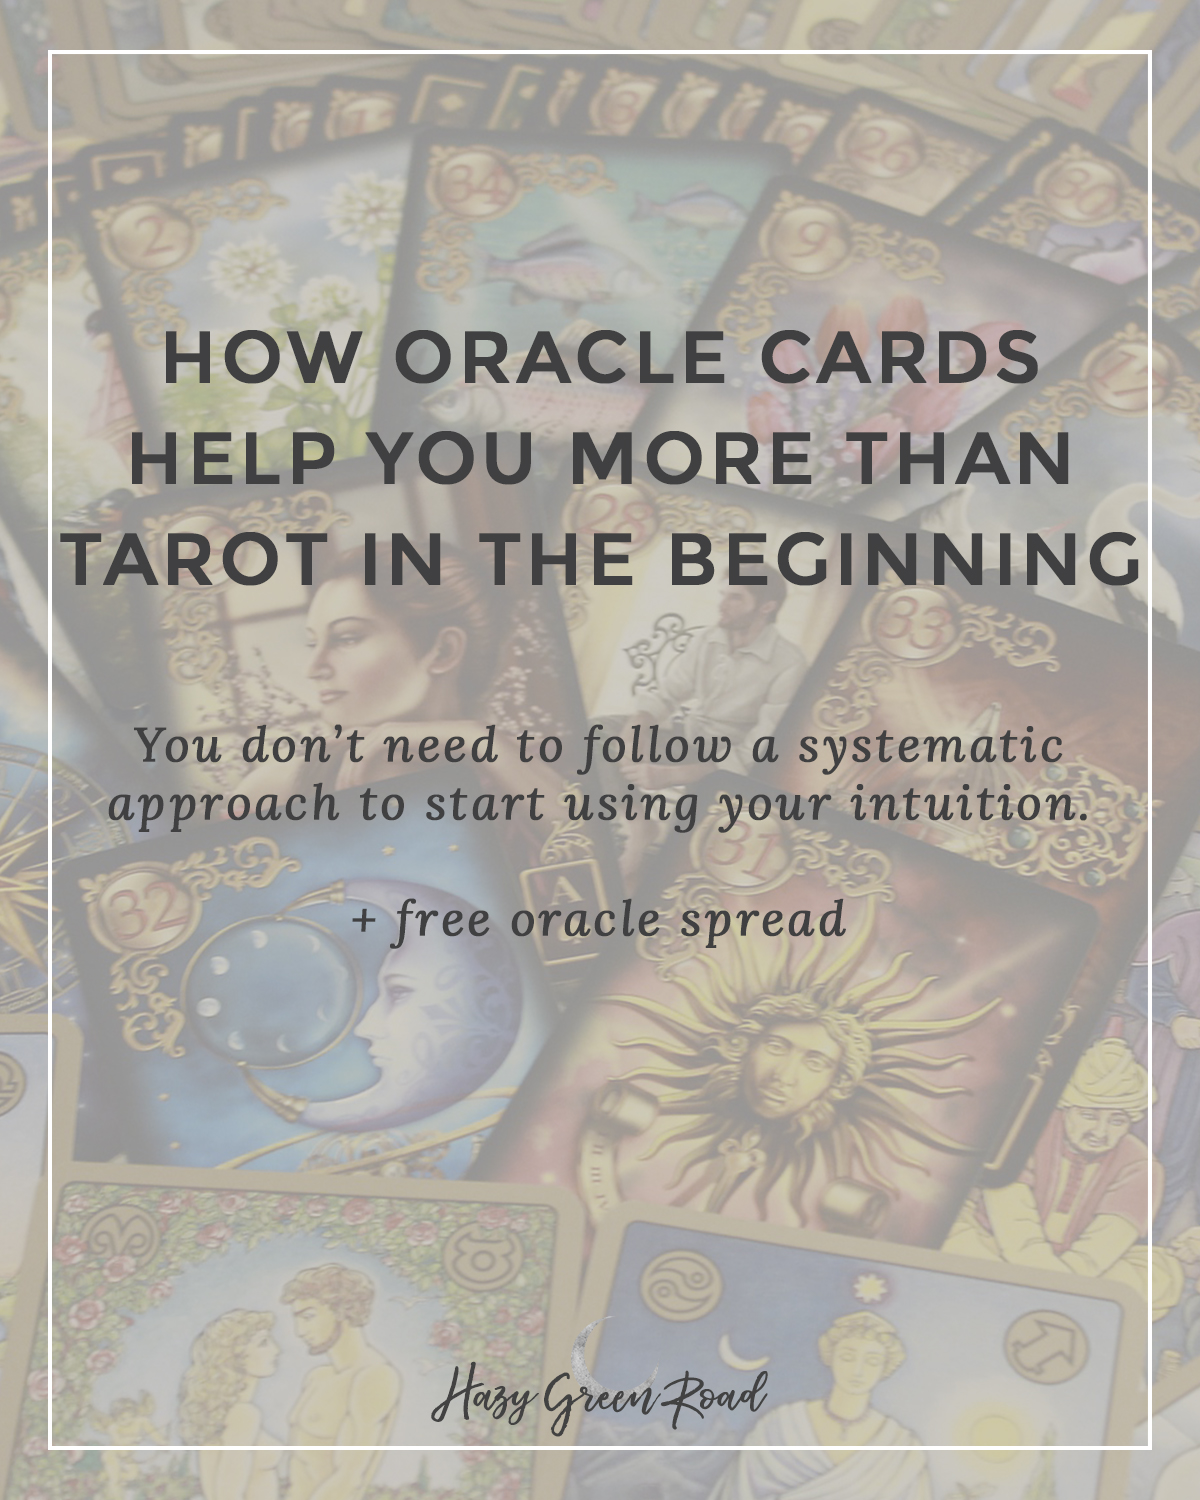 You don't need to use a systematic approach to start using your intuition. Starting with oracle cards can help in several ways.